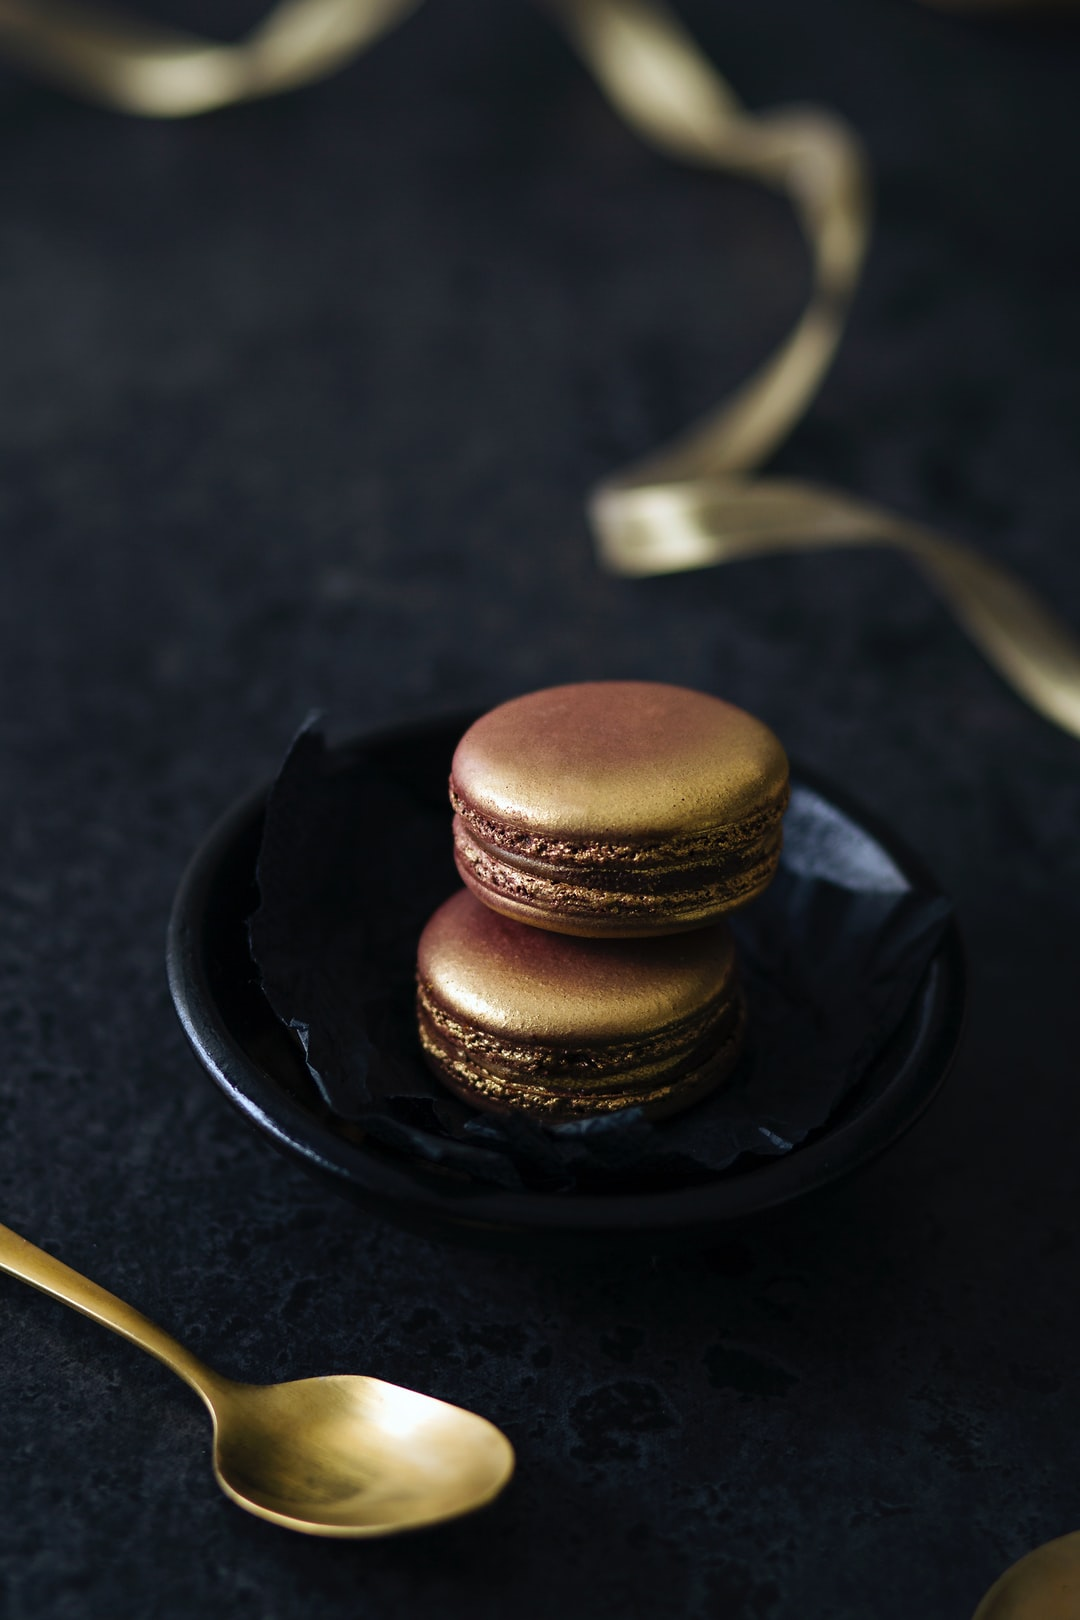 I stumbled upon these gold macarons and had to photograph them. Glam food at its finest! Also playing with monochromatic colours.